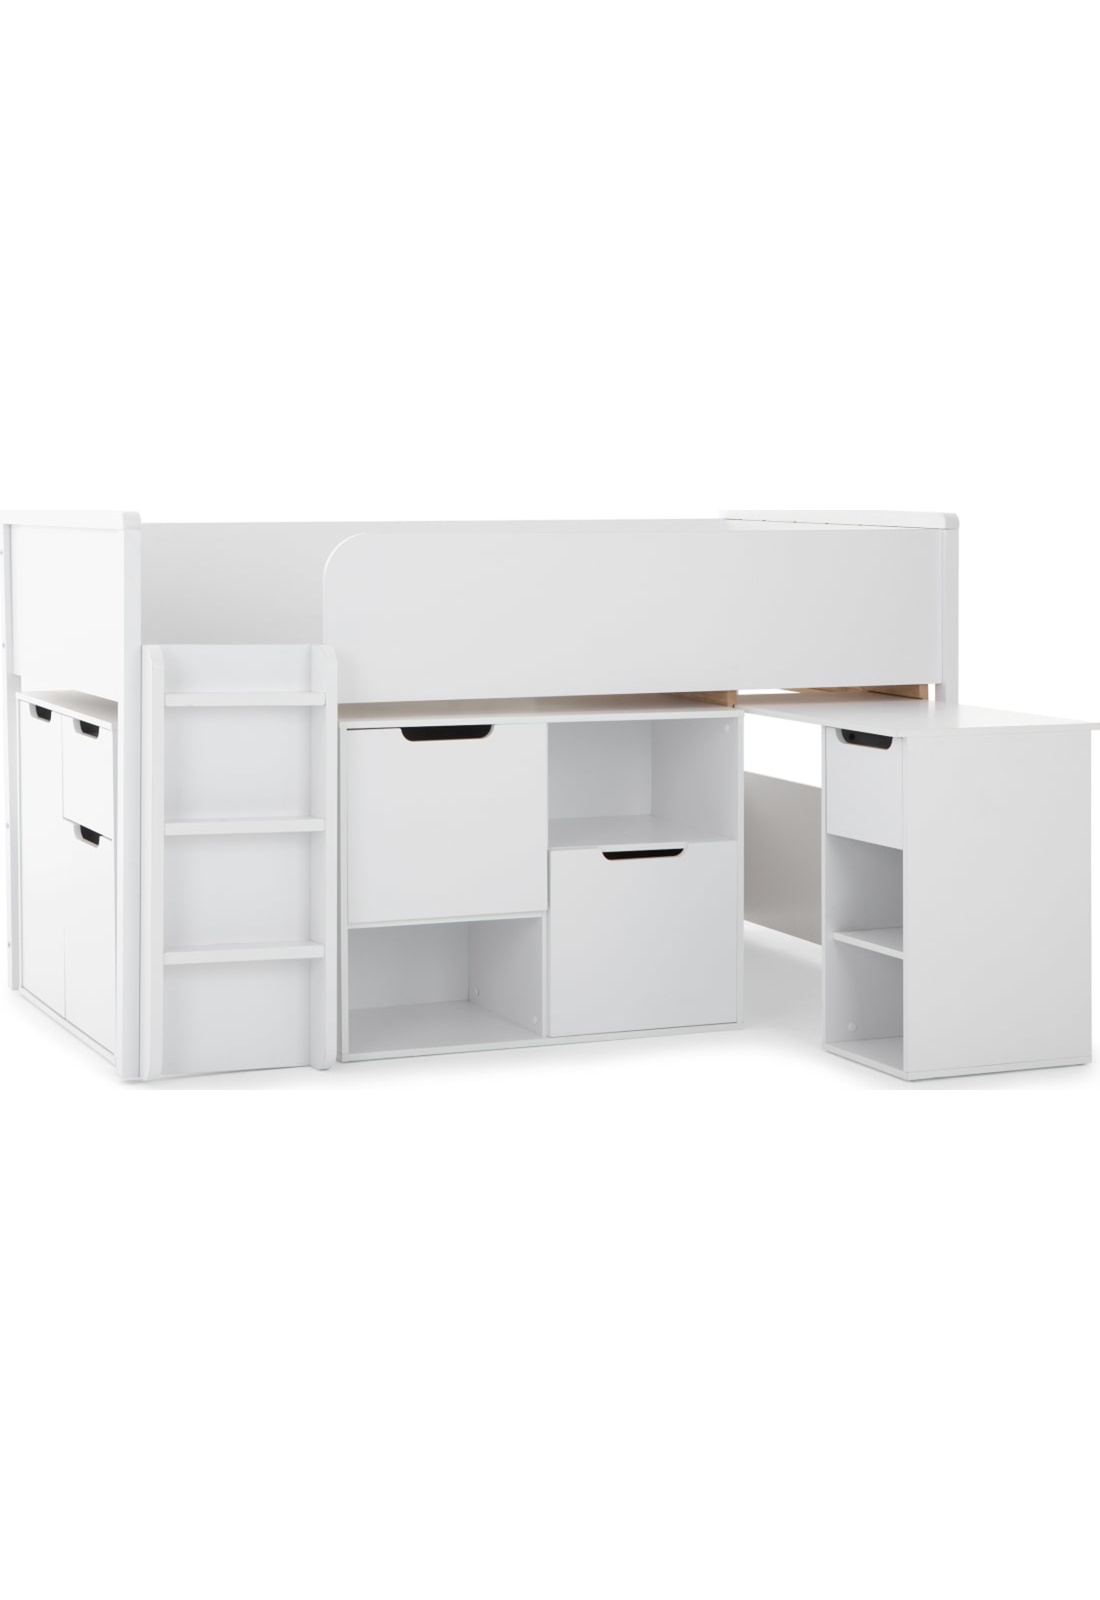 Made Cabin Bed Storage Station 20 Off White Now On Sale Oak